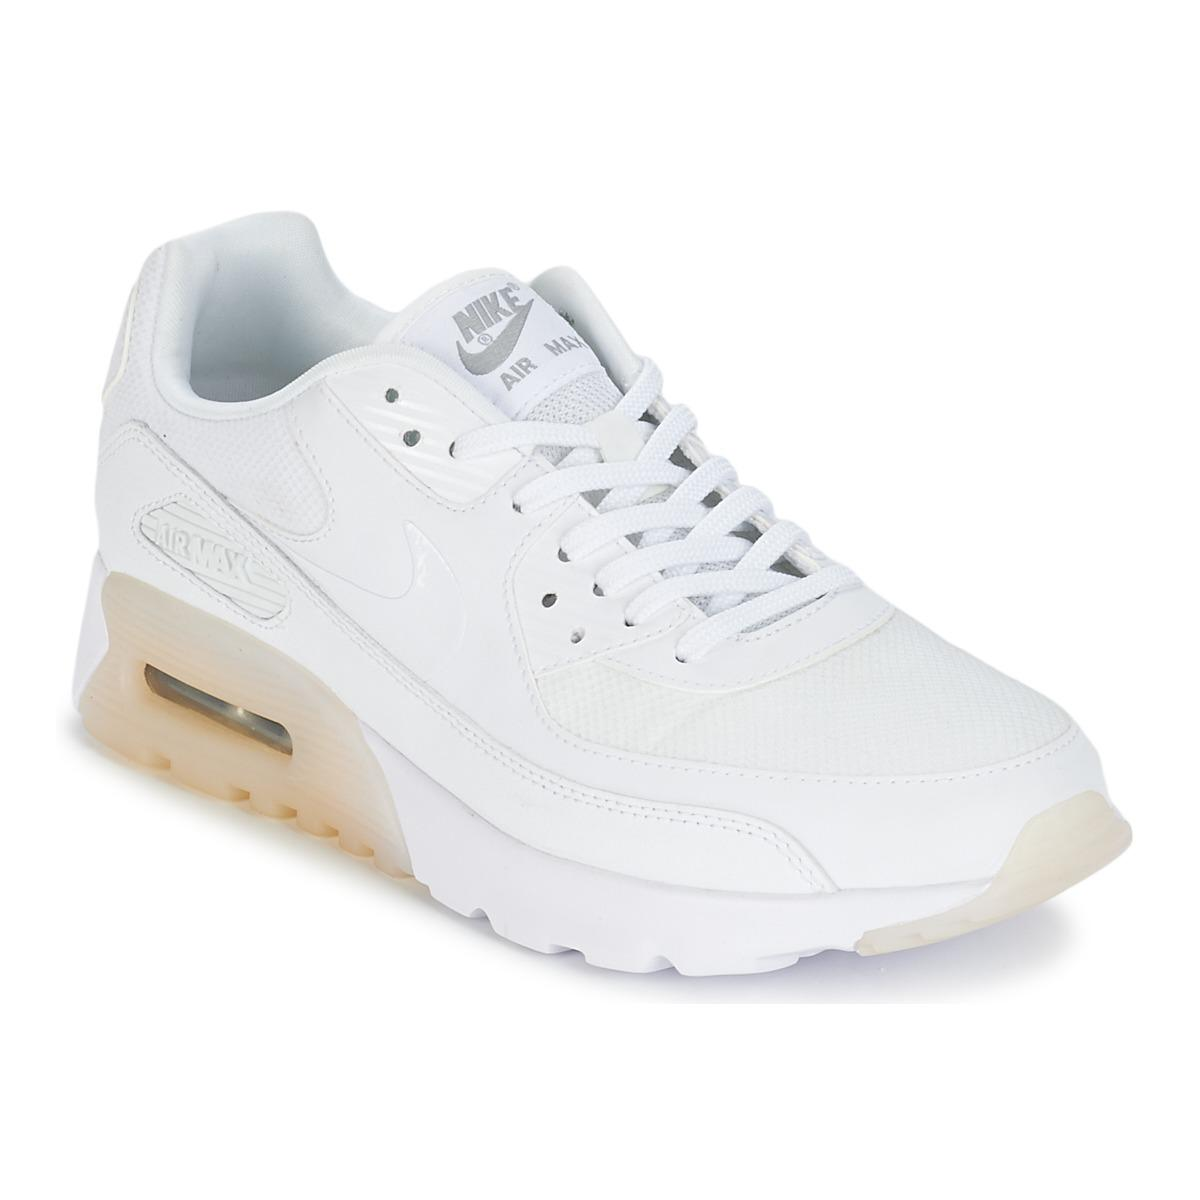 b28d6f85e2f0 Nike Air Max 90 Ultra Essential W Women s Shoes (trainers) In White ...